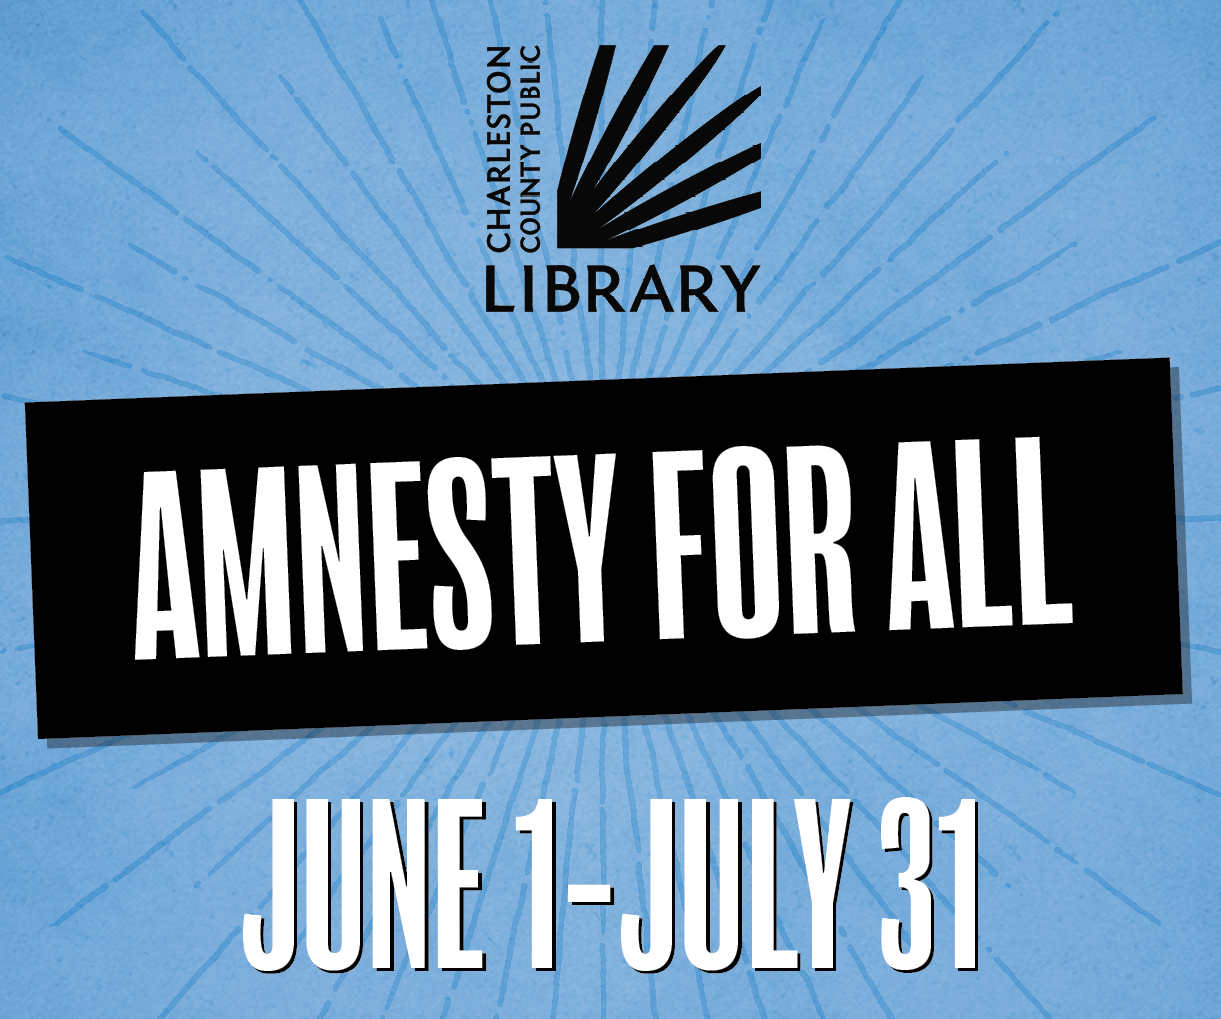 CCPL Celebrates Amnesty for All During June and July